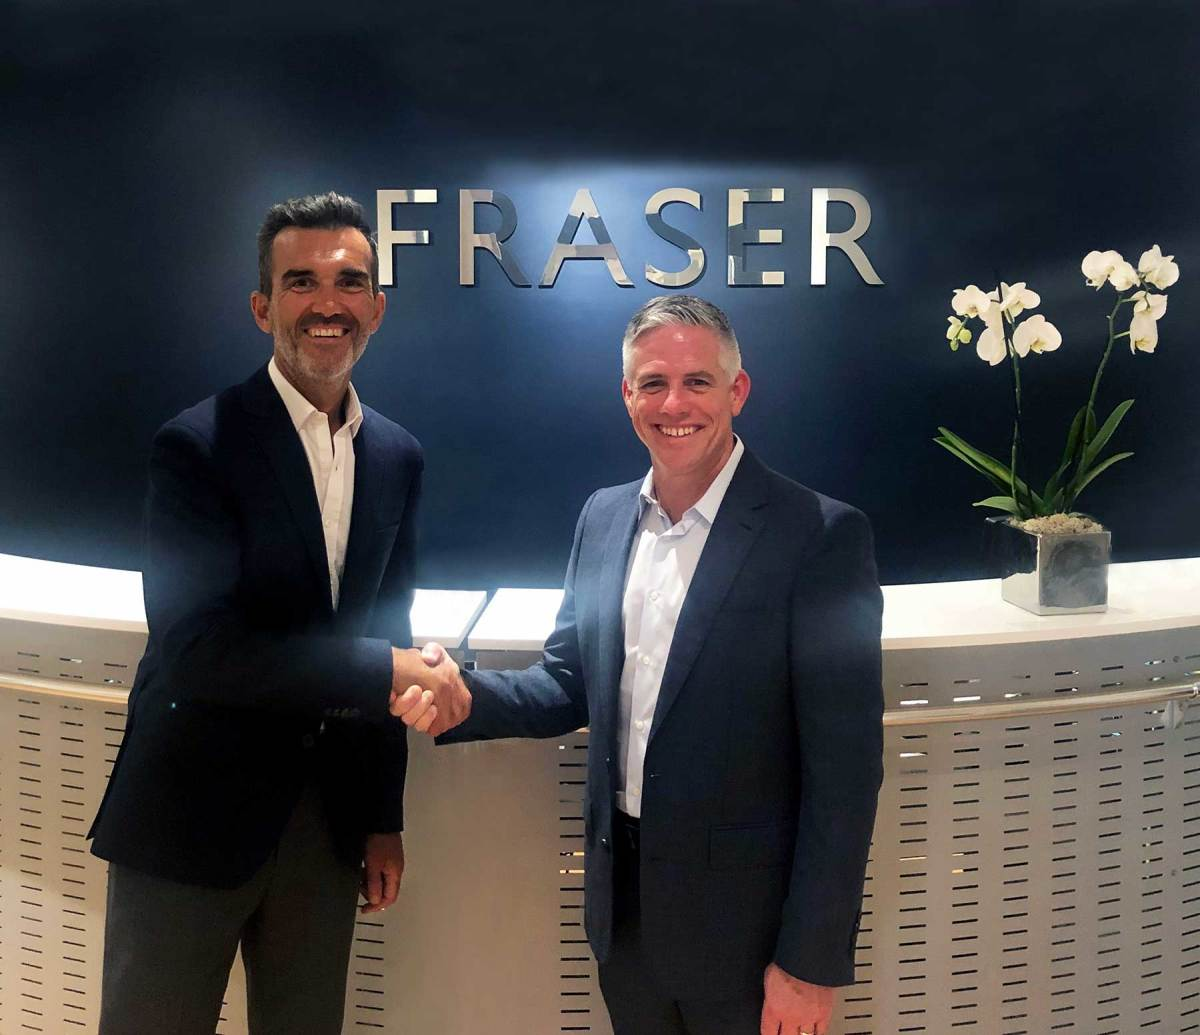 Raphael Sauleau, CEO of Fraser (left), W. Brett McGill, Chief Executive Officer and President of MarineMax (right)